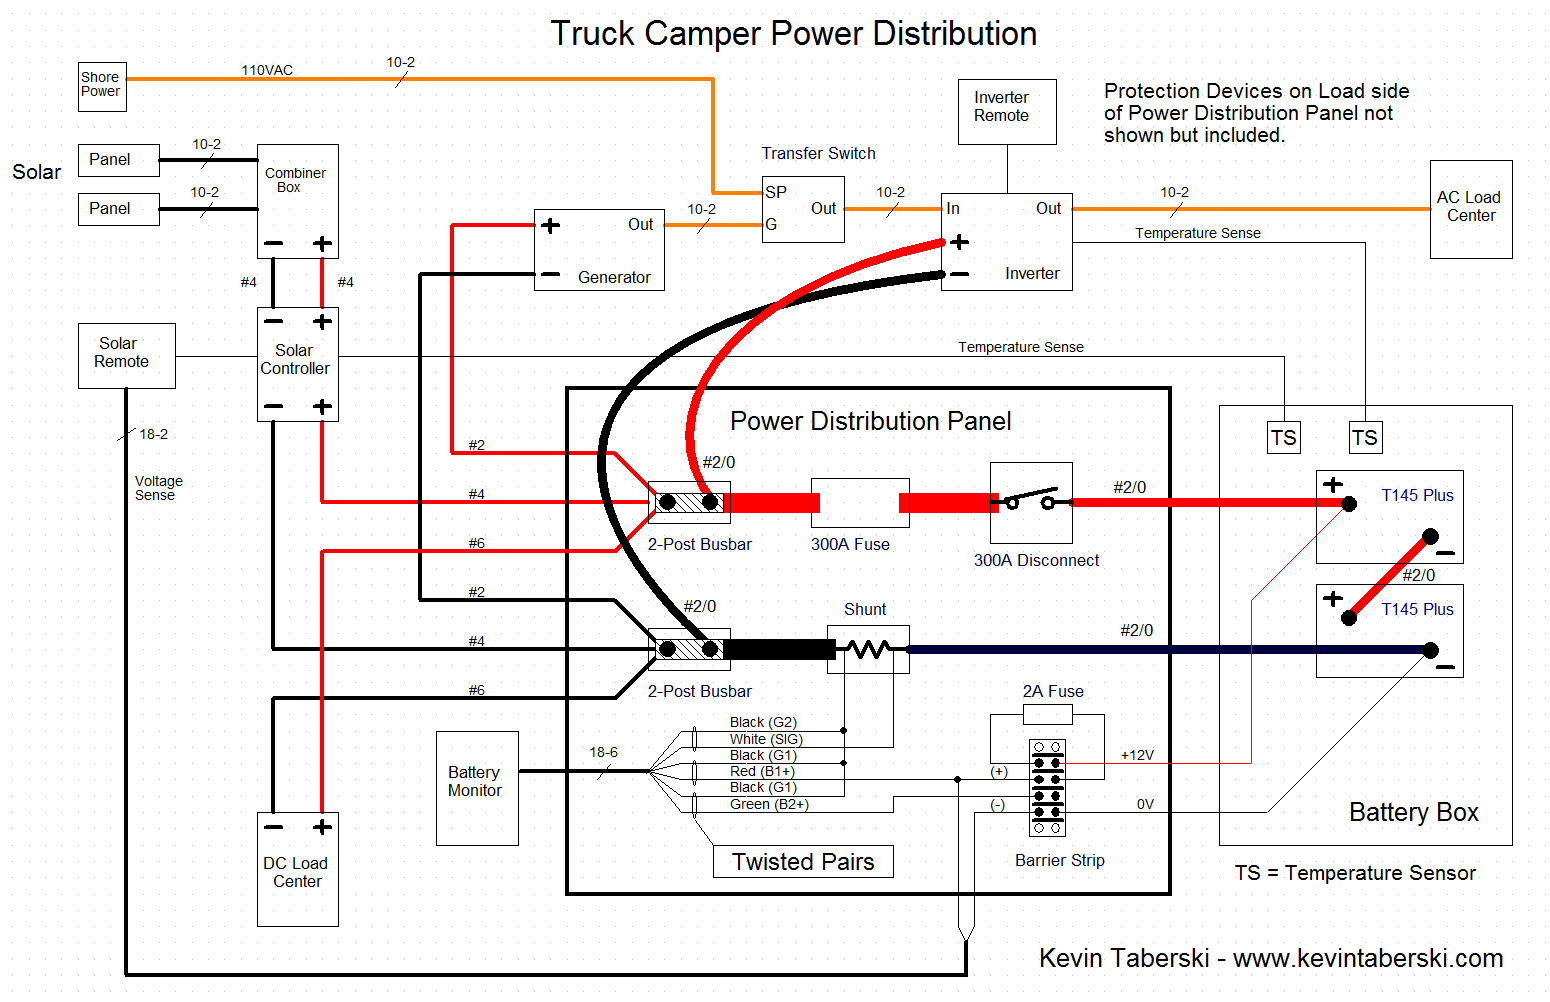 Truck Camper Inverter Kevin Taberski Rv Wiring Diagrams Online Power Distribution Diagram